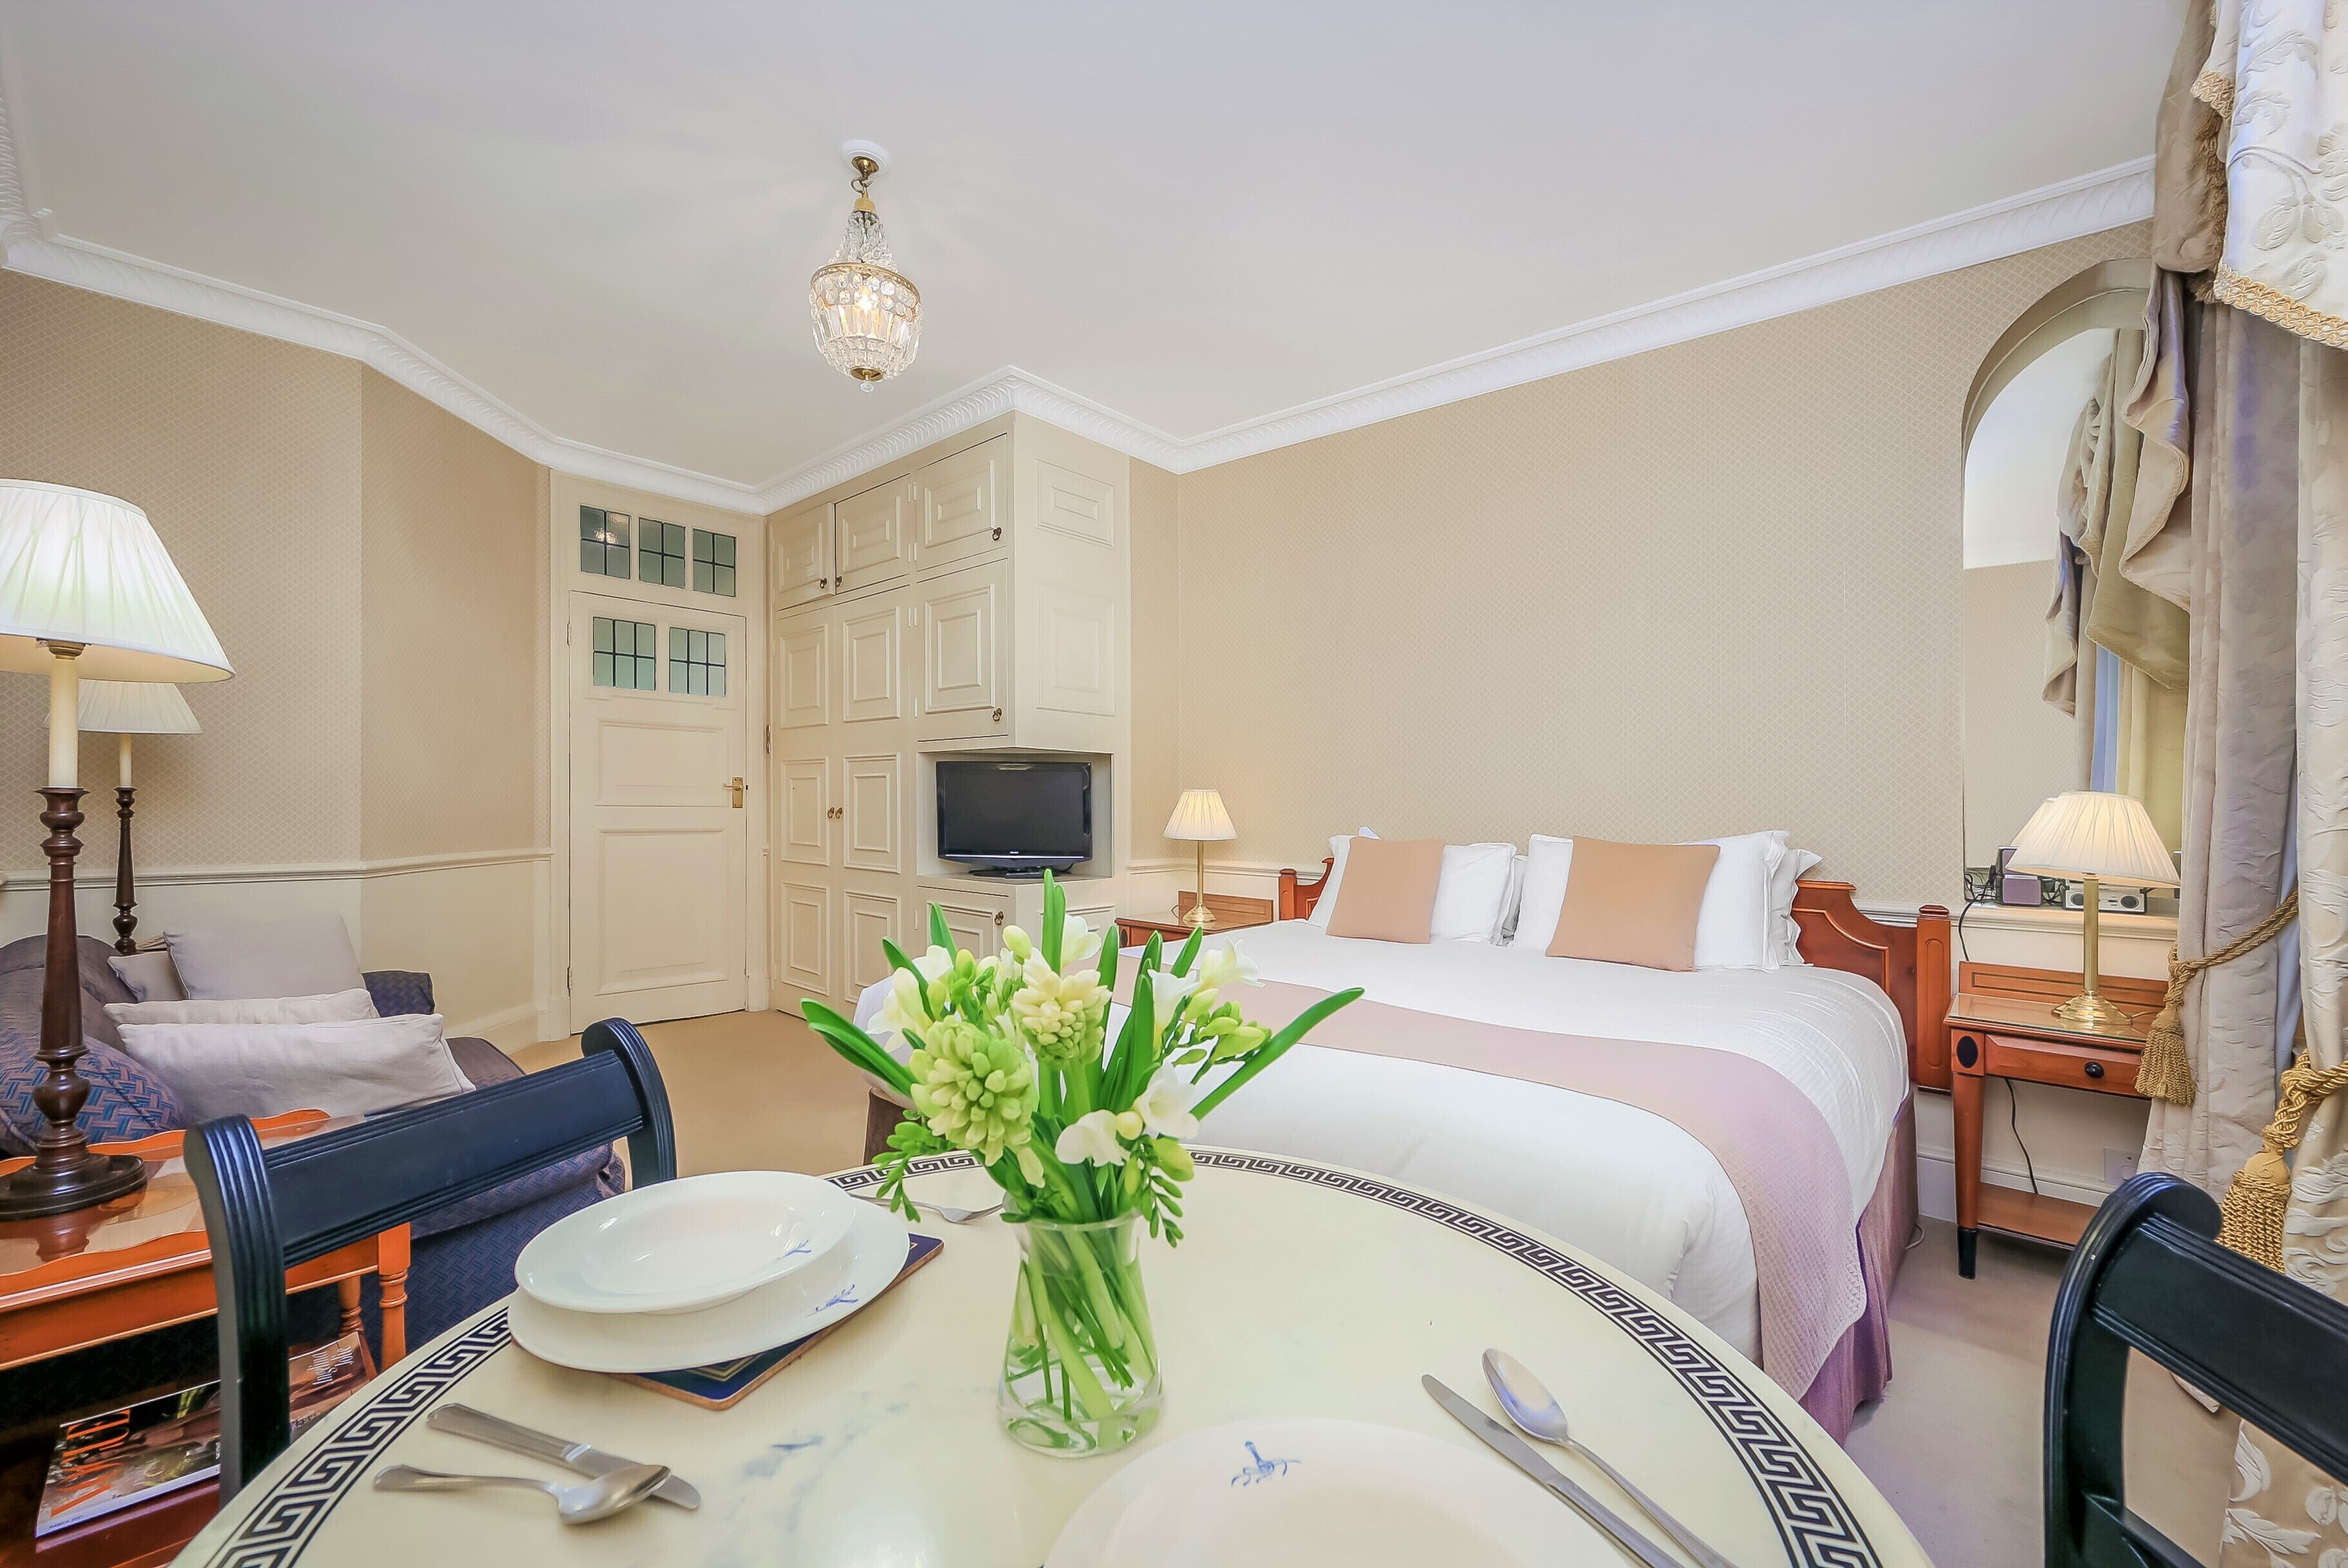 44 Curzon Street By Mansley Serviced Apartments